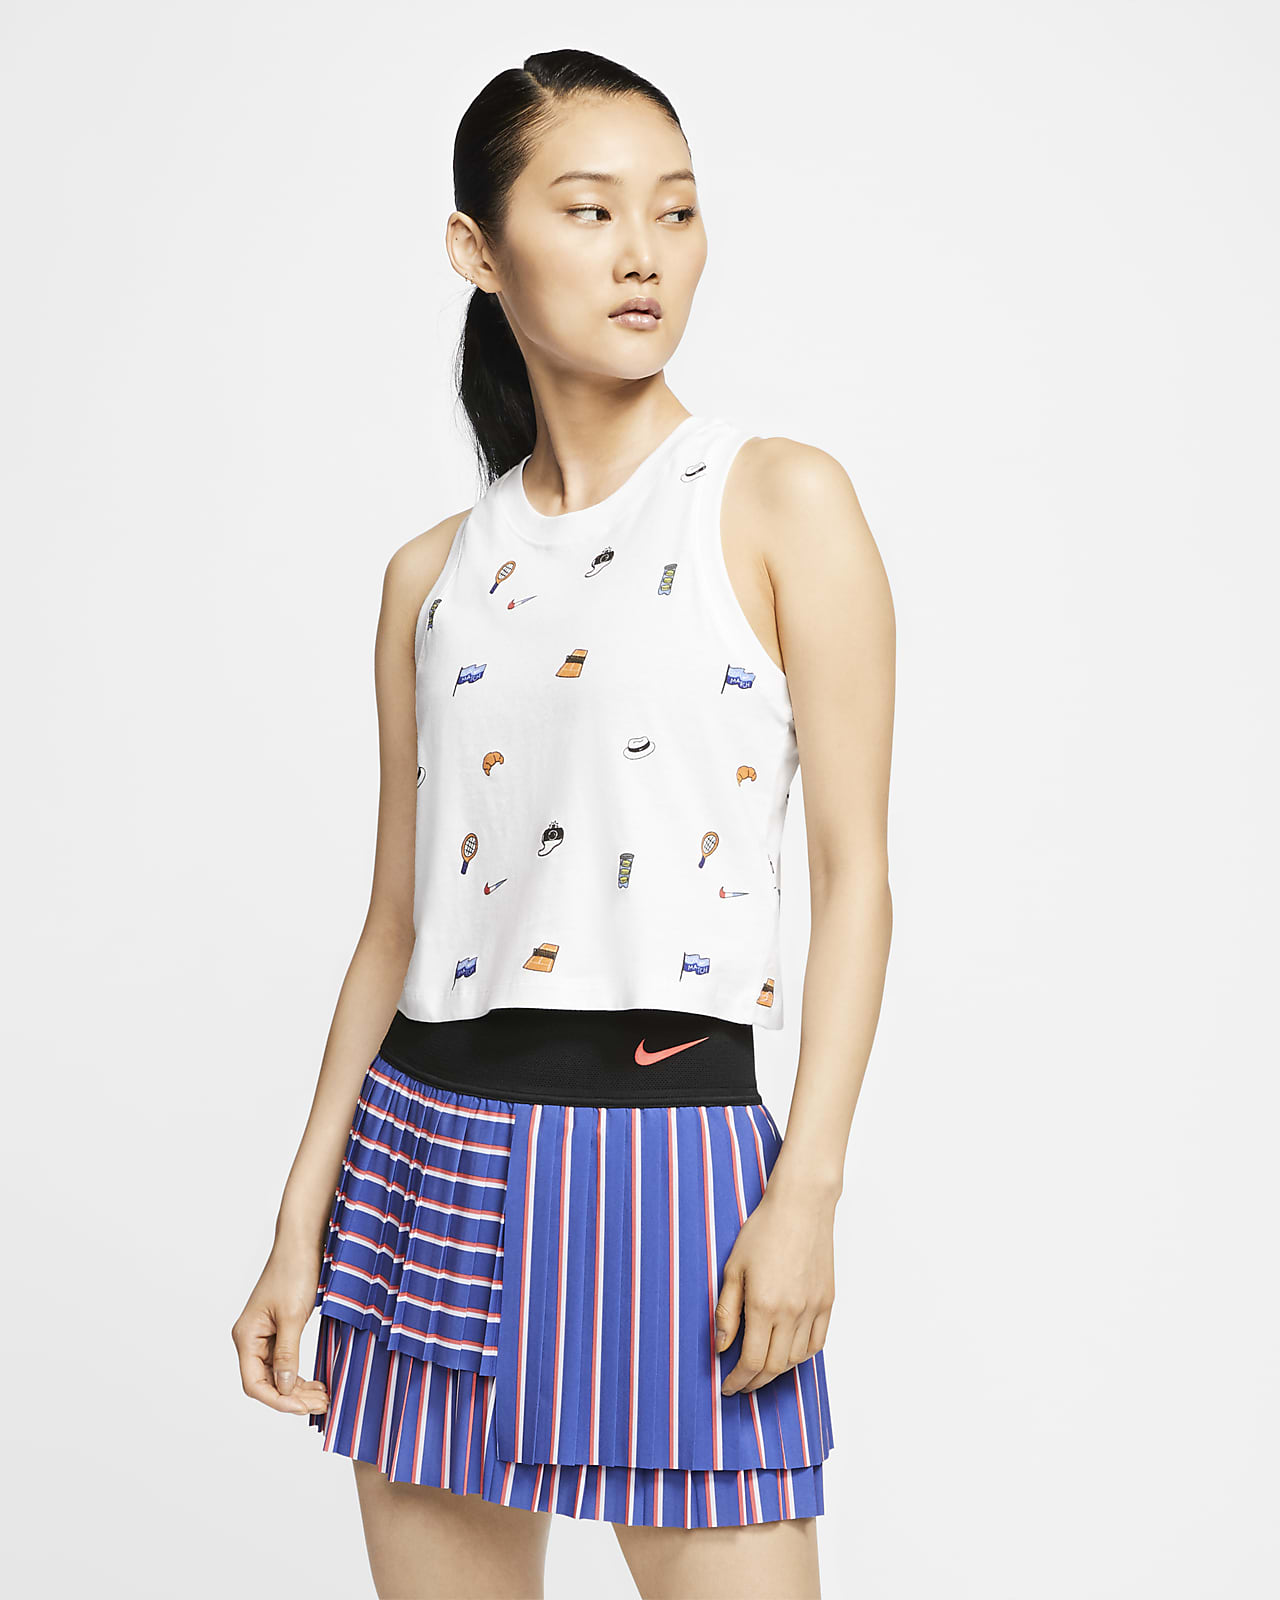 NikeCourt Women's Cropped Tennis Tank